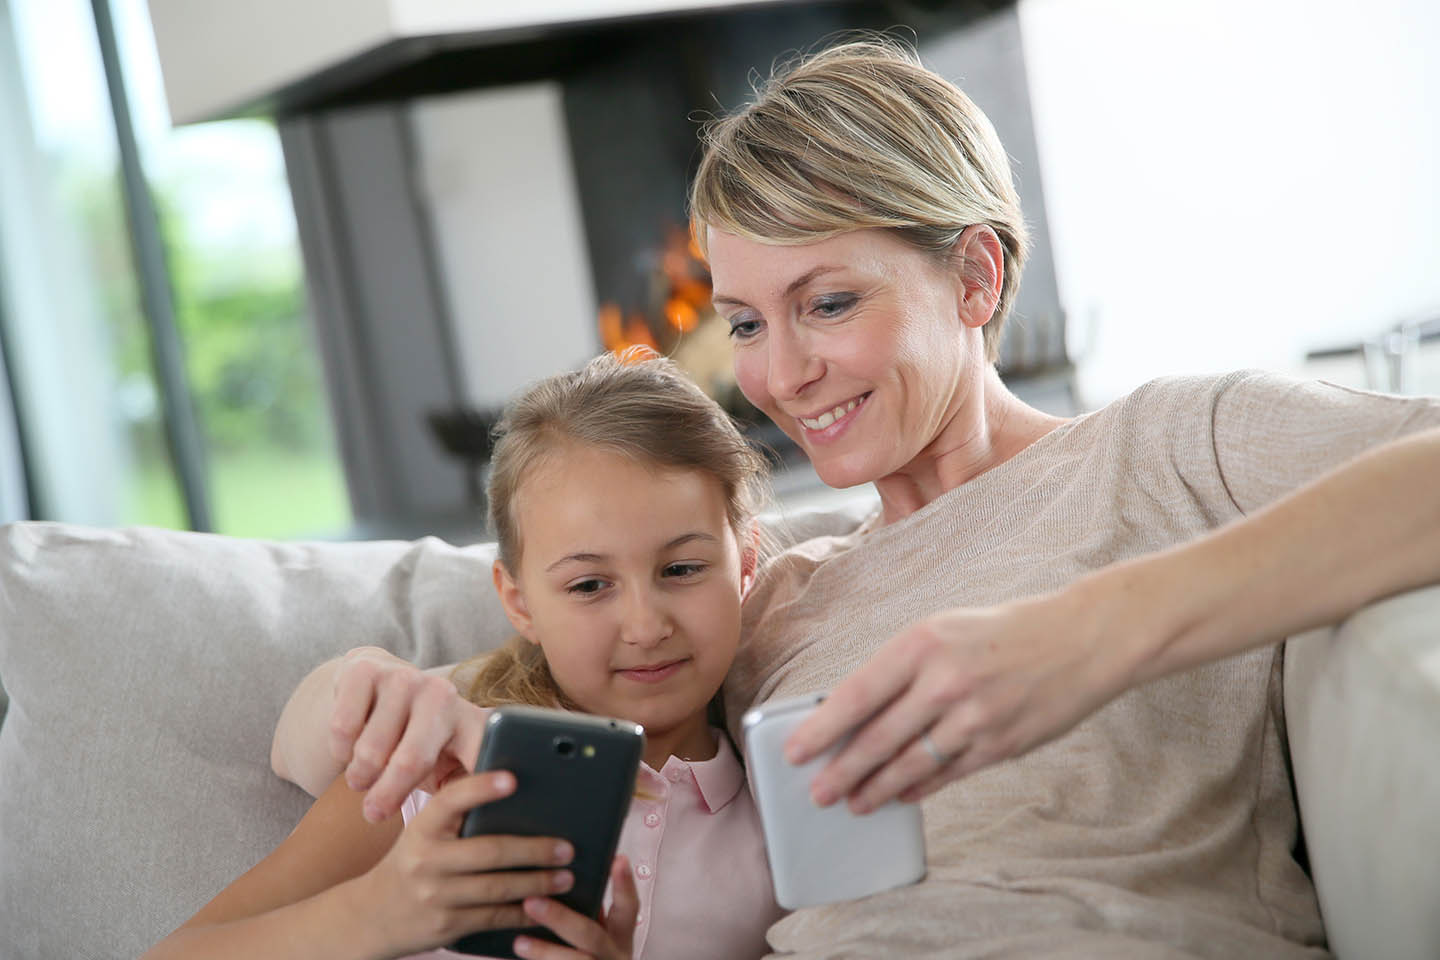 Mother and daughter smiling at smartphone